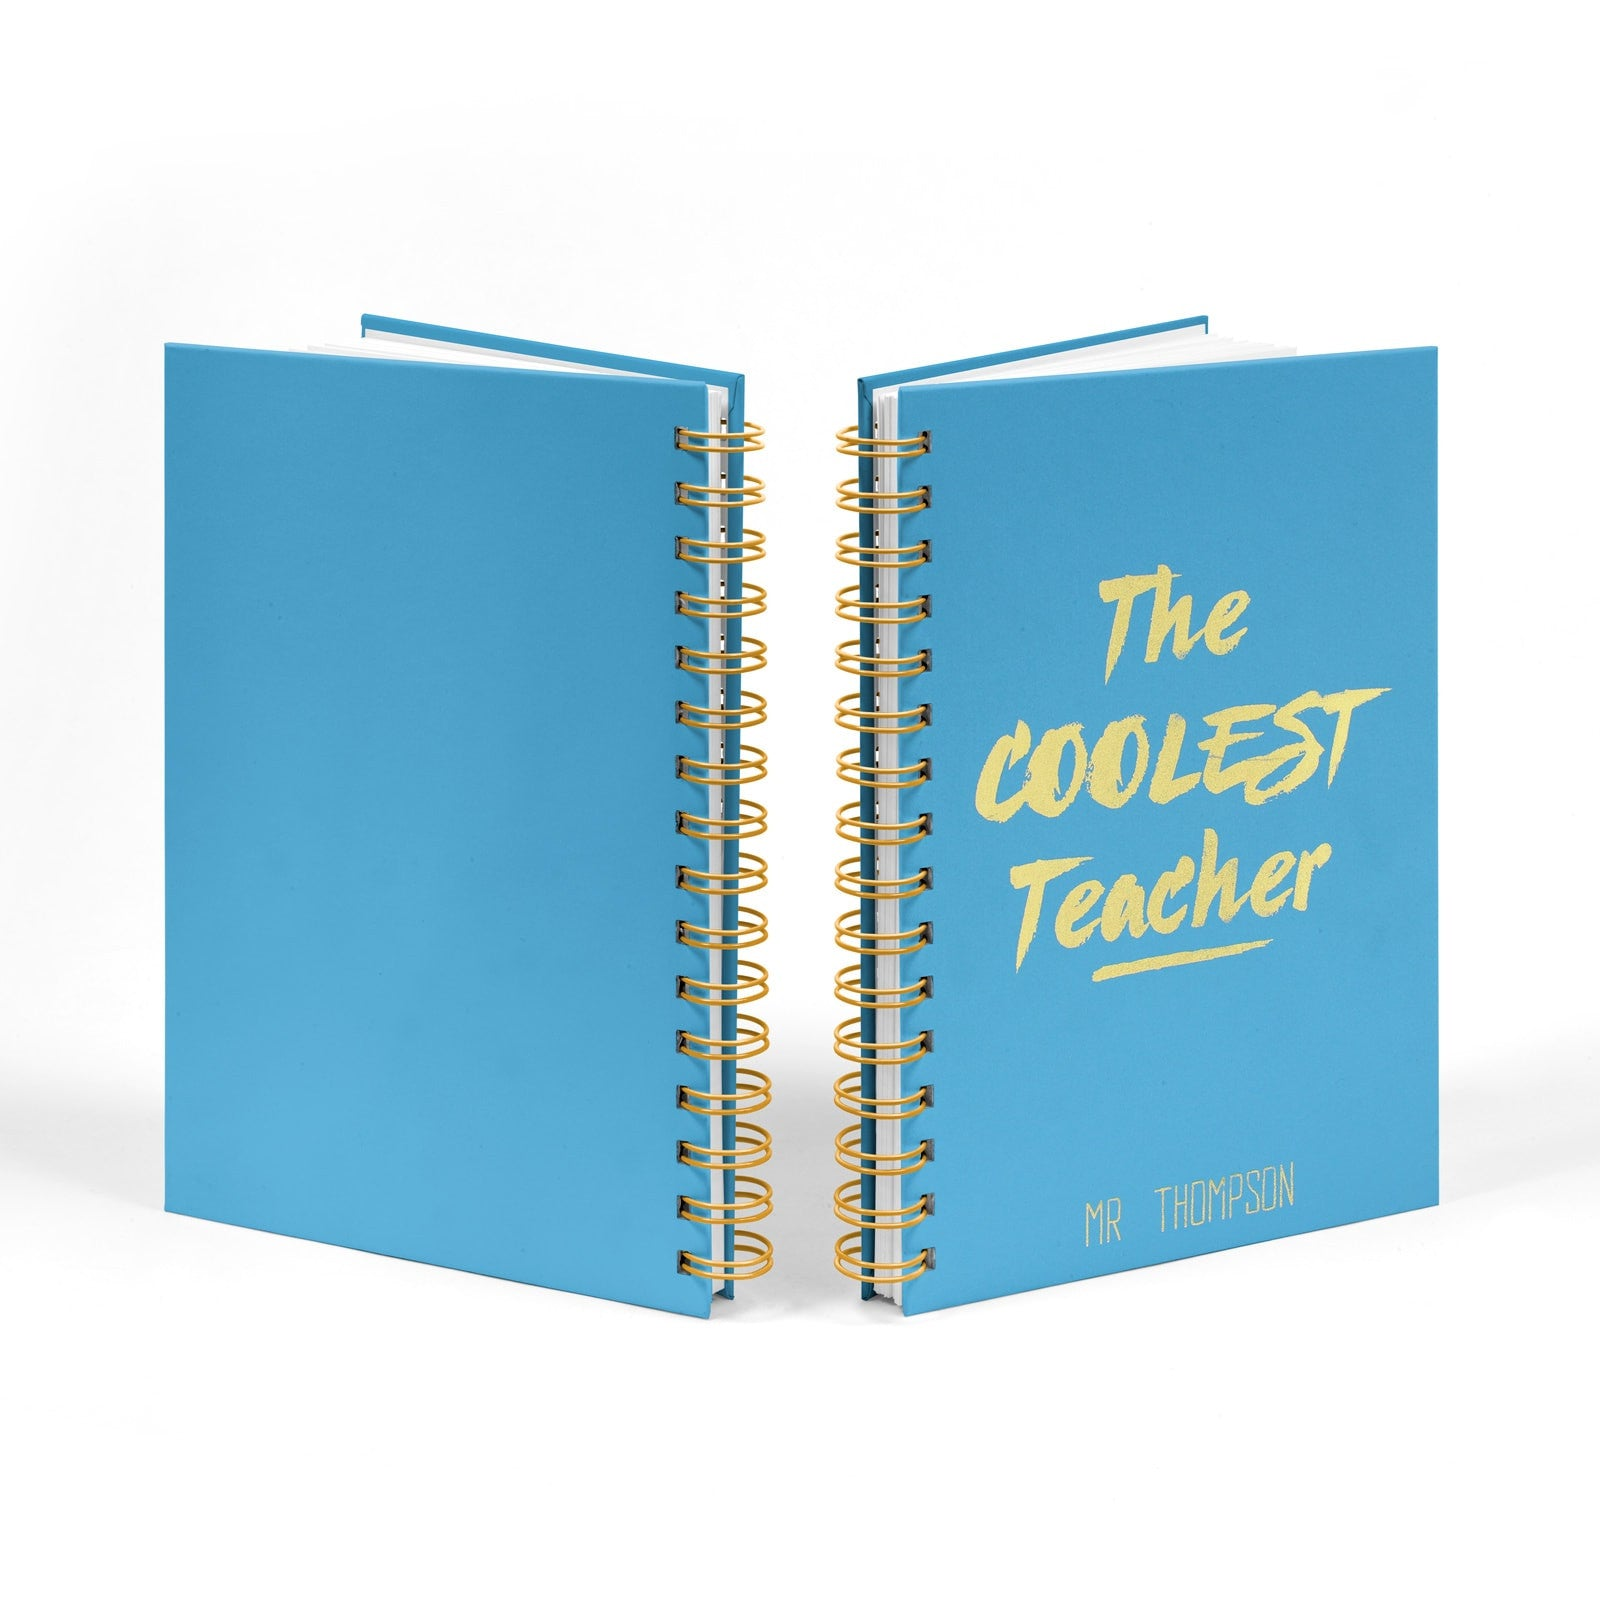 Personalised Coolest Teacher Gold Foil Notebook Front & Back